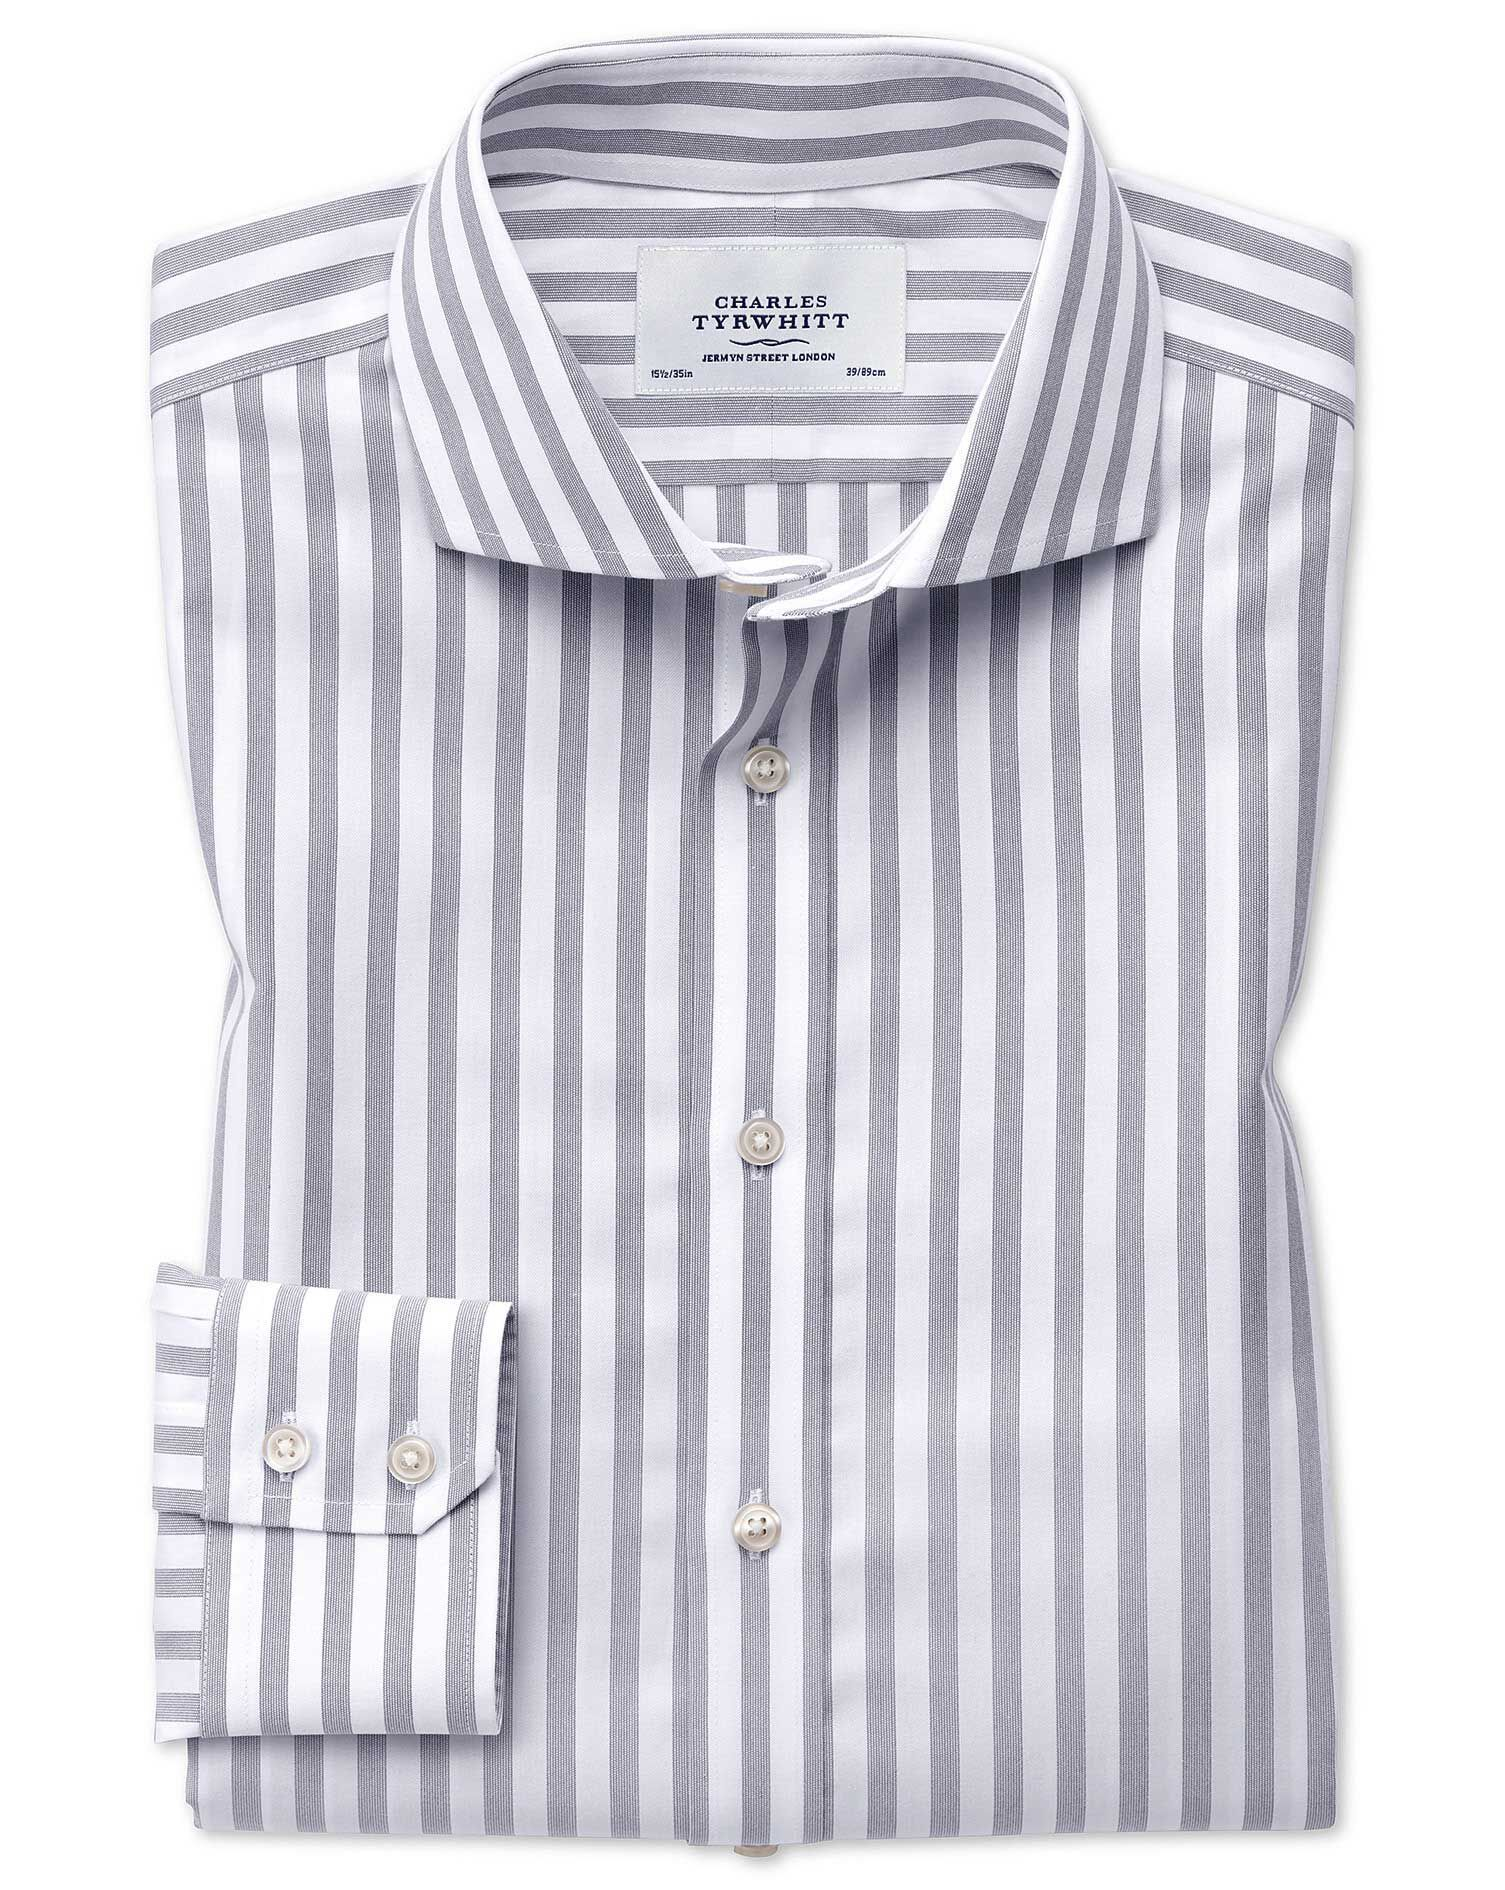 Slim Fit Cutaway Non-Iron Wide Stripe Grey Cotton Formal Shirt Single Cuff Size 16/33 by Charles Tyr